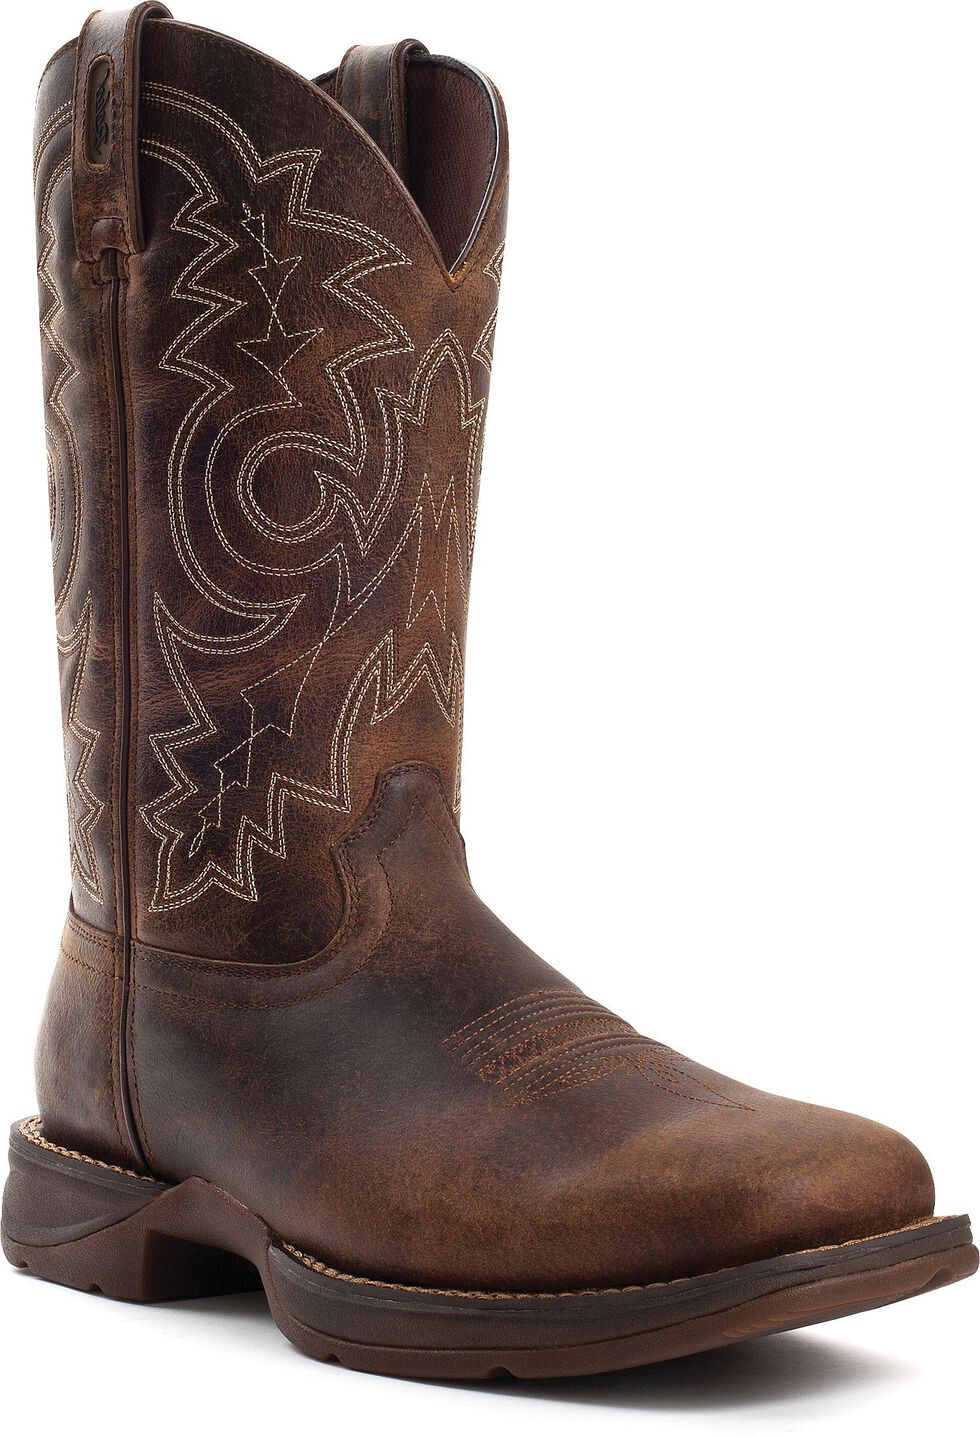 Durango Rebel Men's Brown Pull-On Western Boot - Square Toe, Brown, hi-res